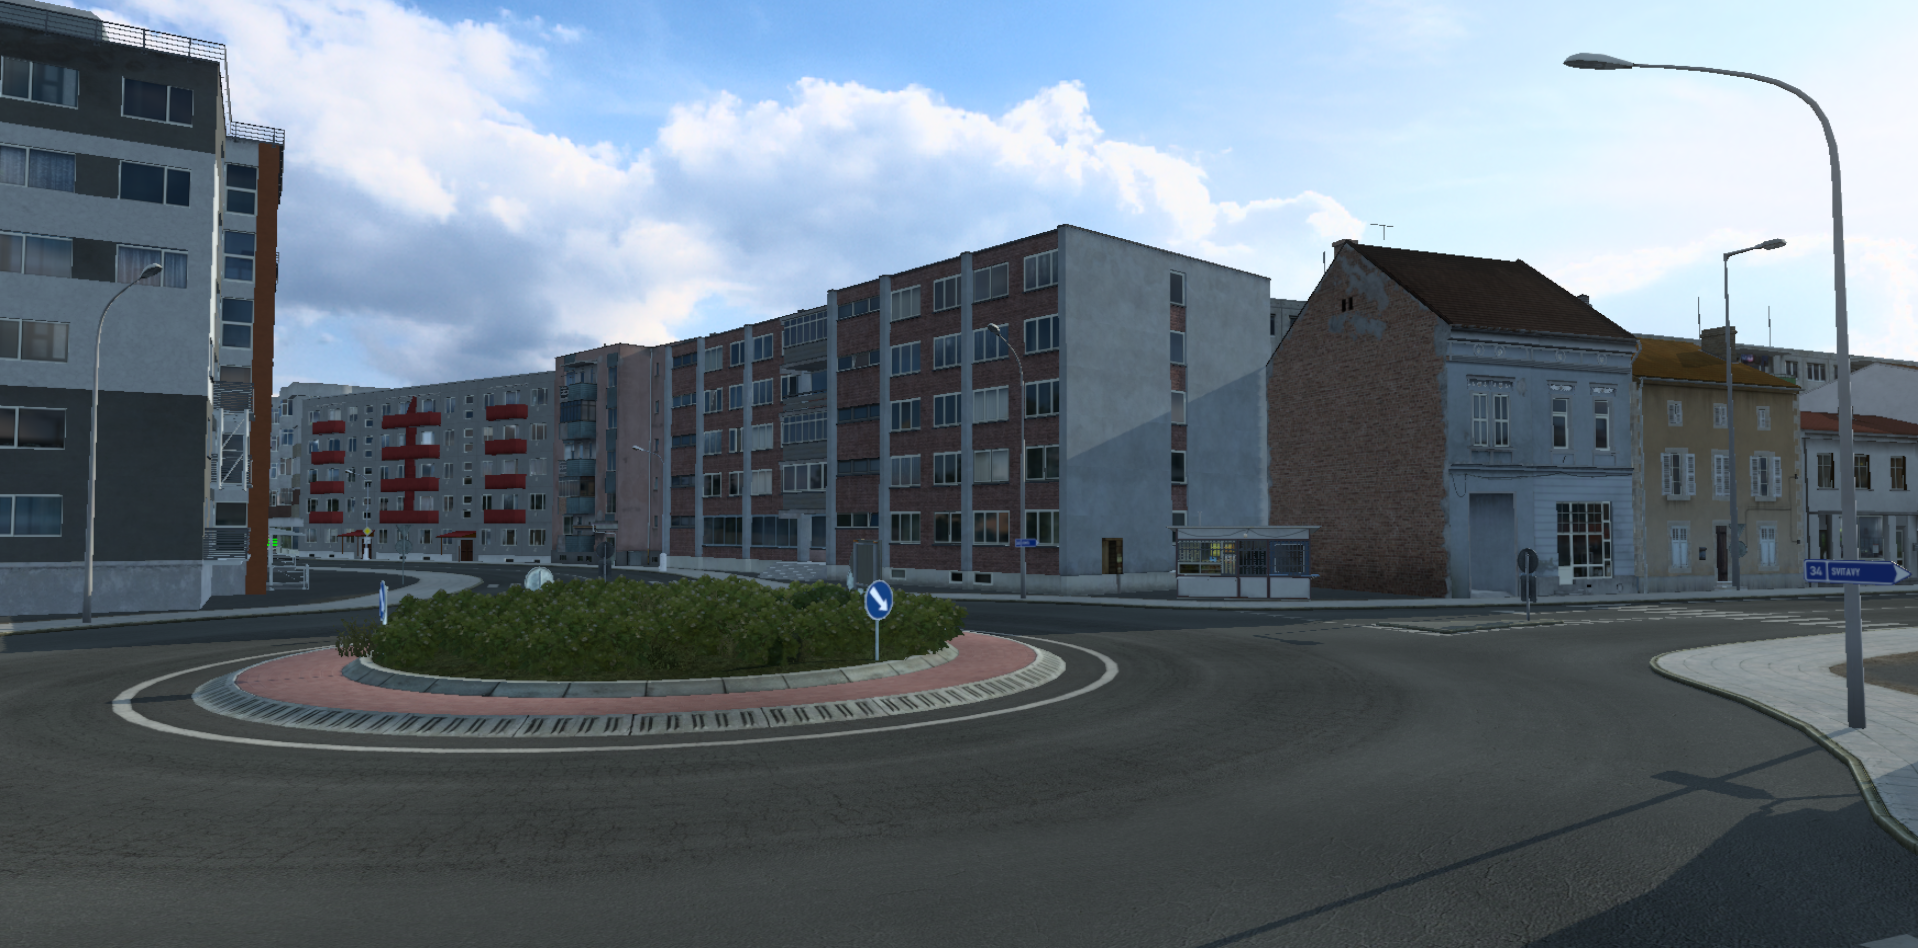 ets2_20210606_172738_00.png